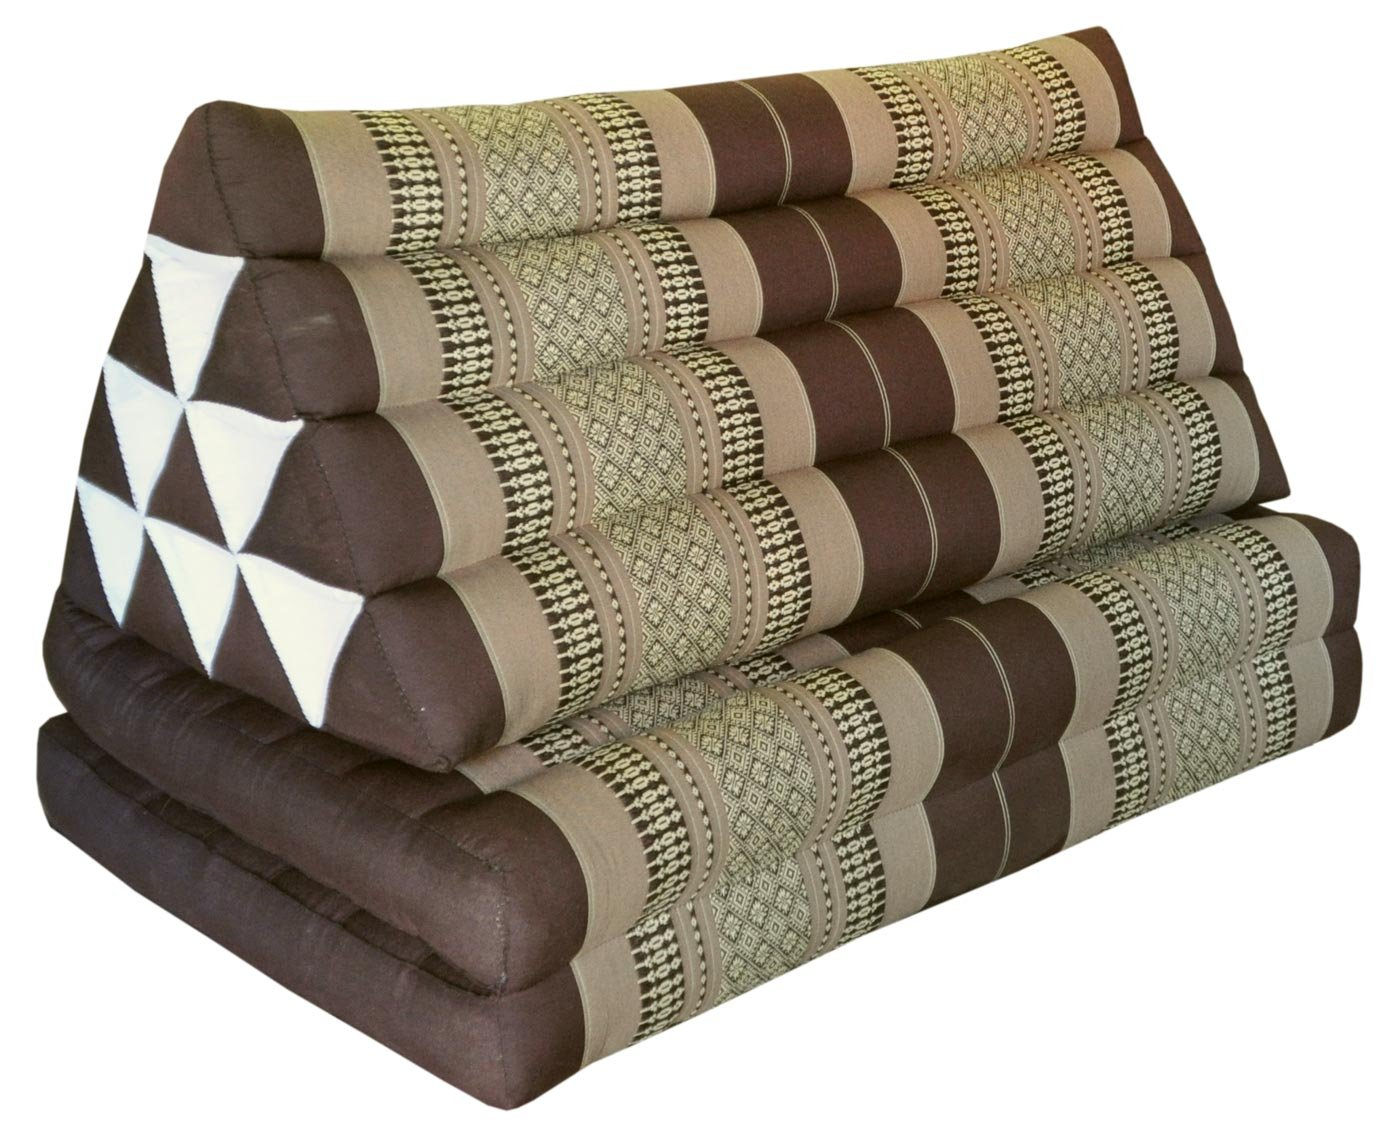 Thai triangle cushion XXL, with 2 folding seats, brown, sofa, relaxation, beach, pool, meditation, yoga, made in Thailand. (82417) by Wilai GmbH